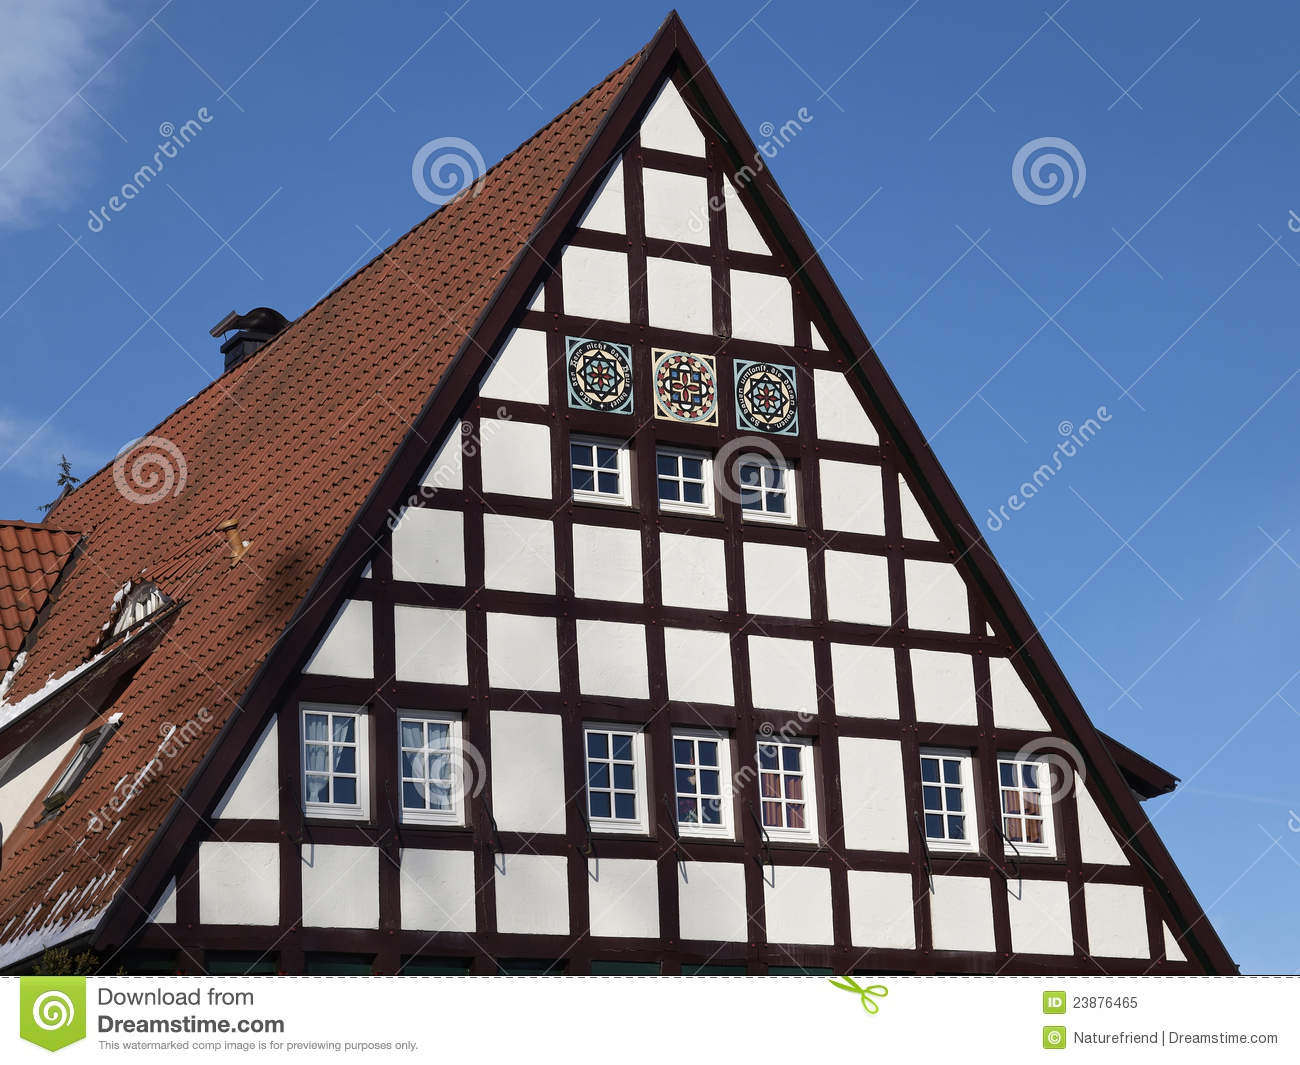 Nice timbered house in Germany